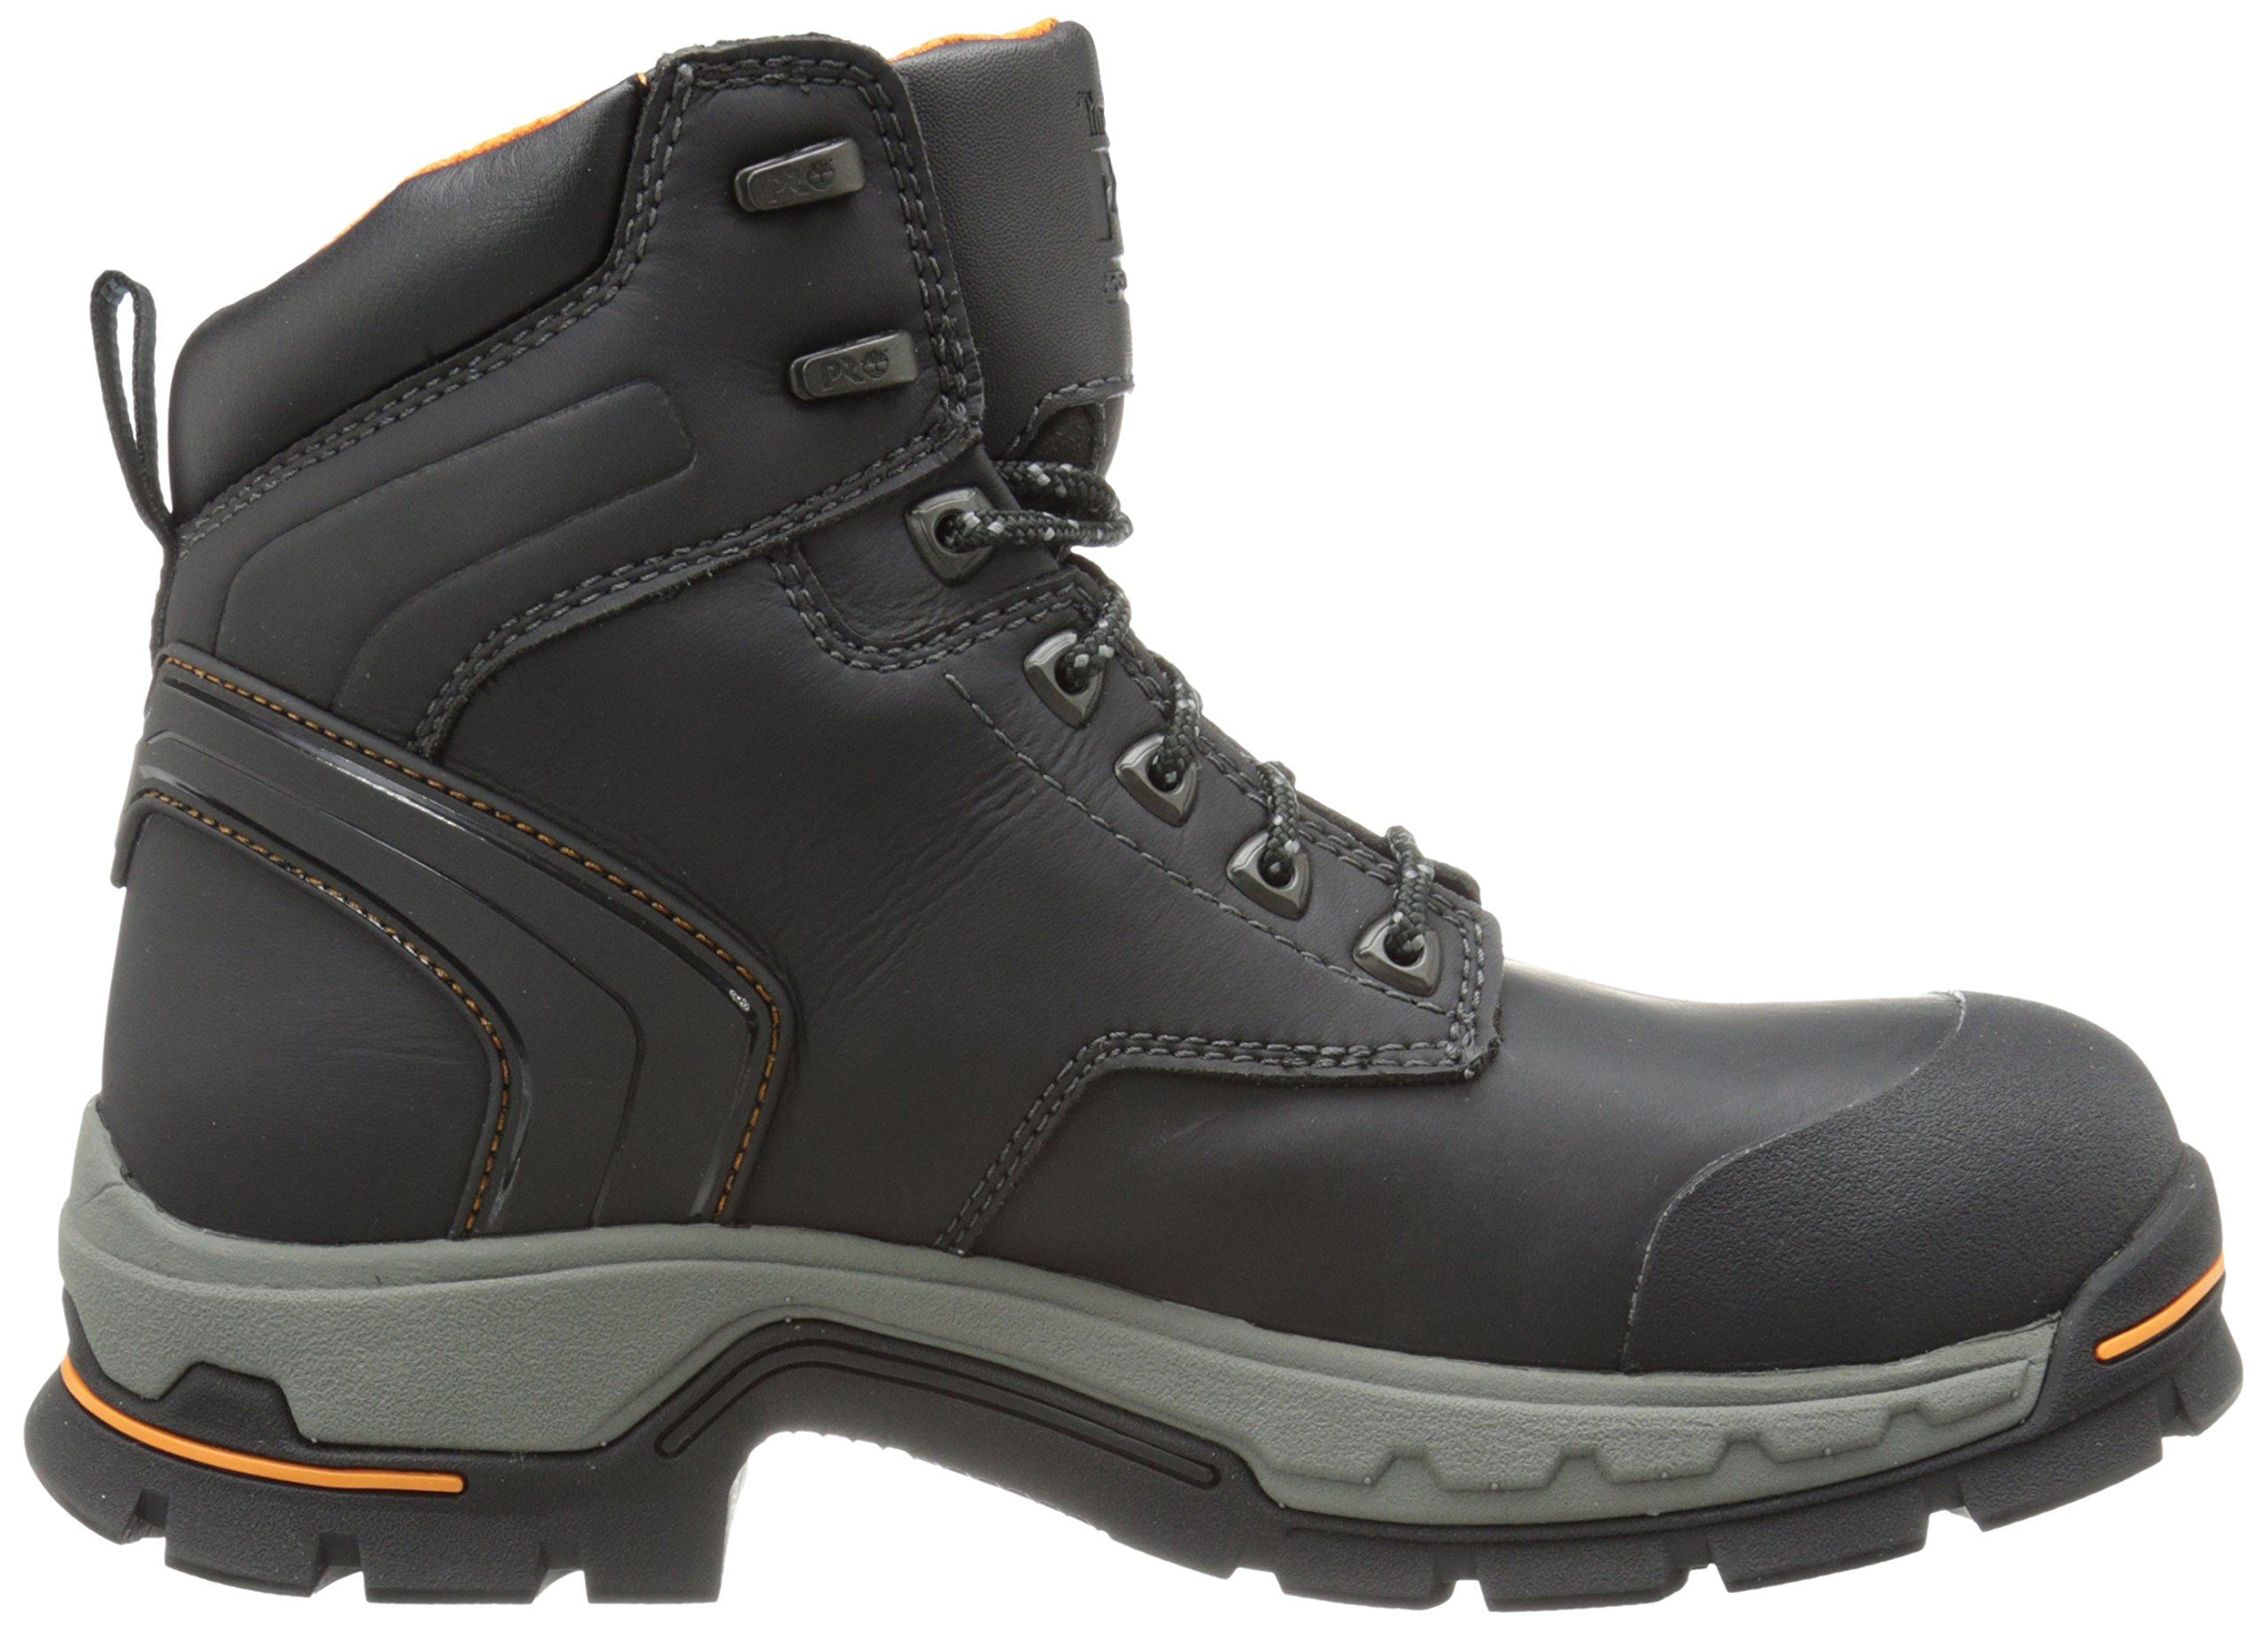 Timberland PRO Men's 6 Inch Stockdale Grip Max Alloy Toe Work and Hunt Boot, Black Microfiber, 5.5 M US by Timberland PRO (Image #7)